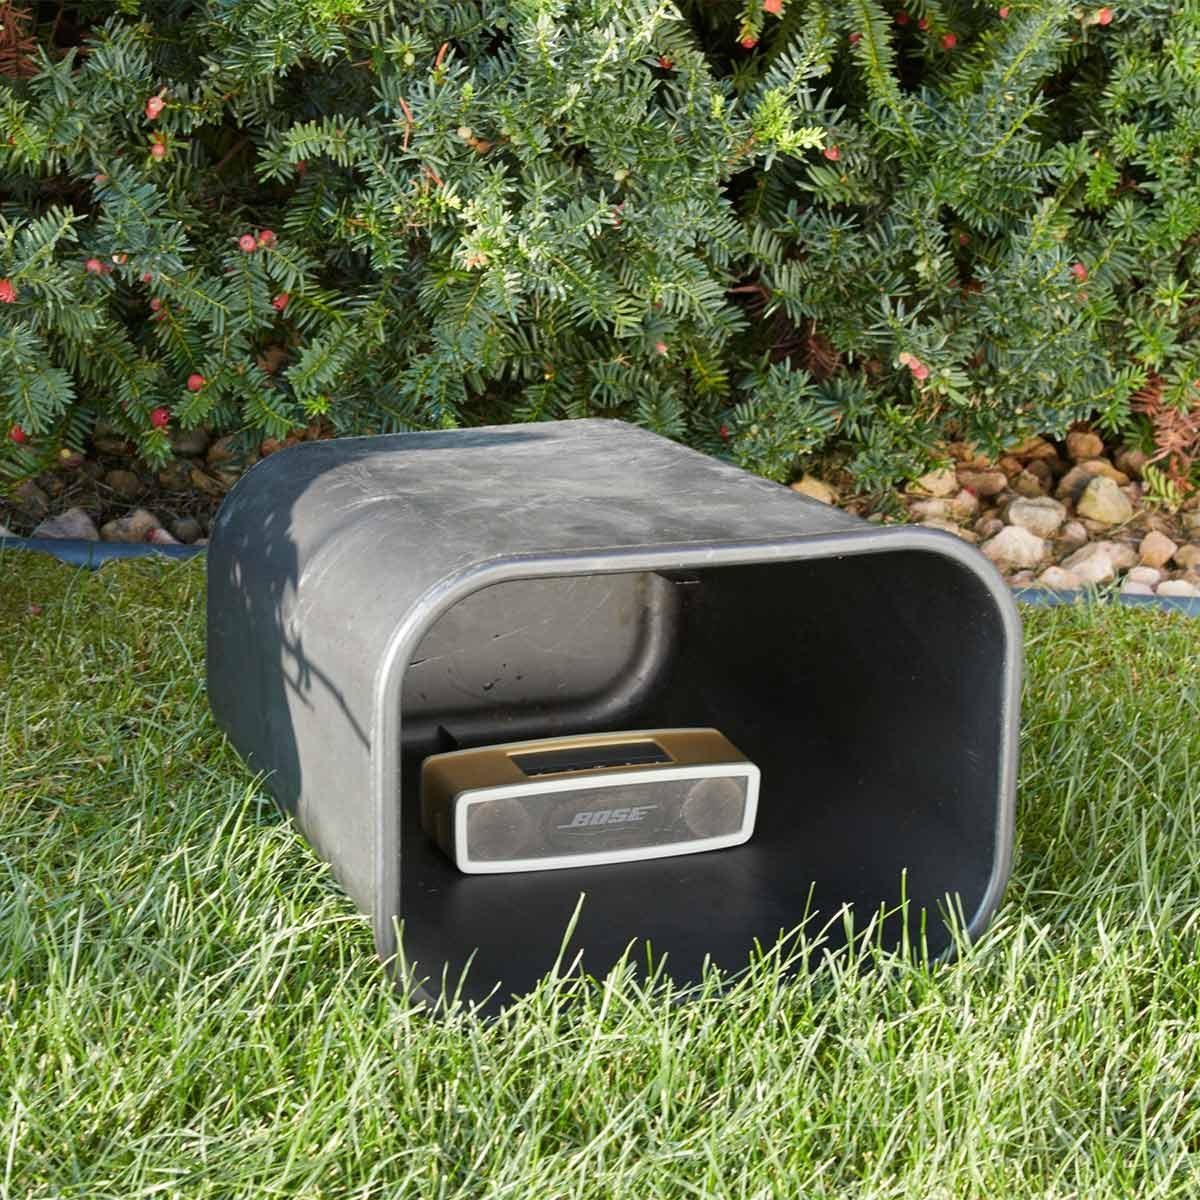 Trash-Can Music Amplifier